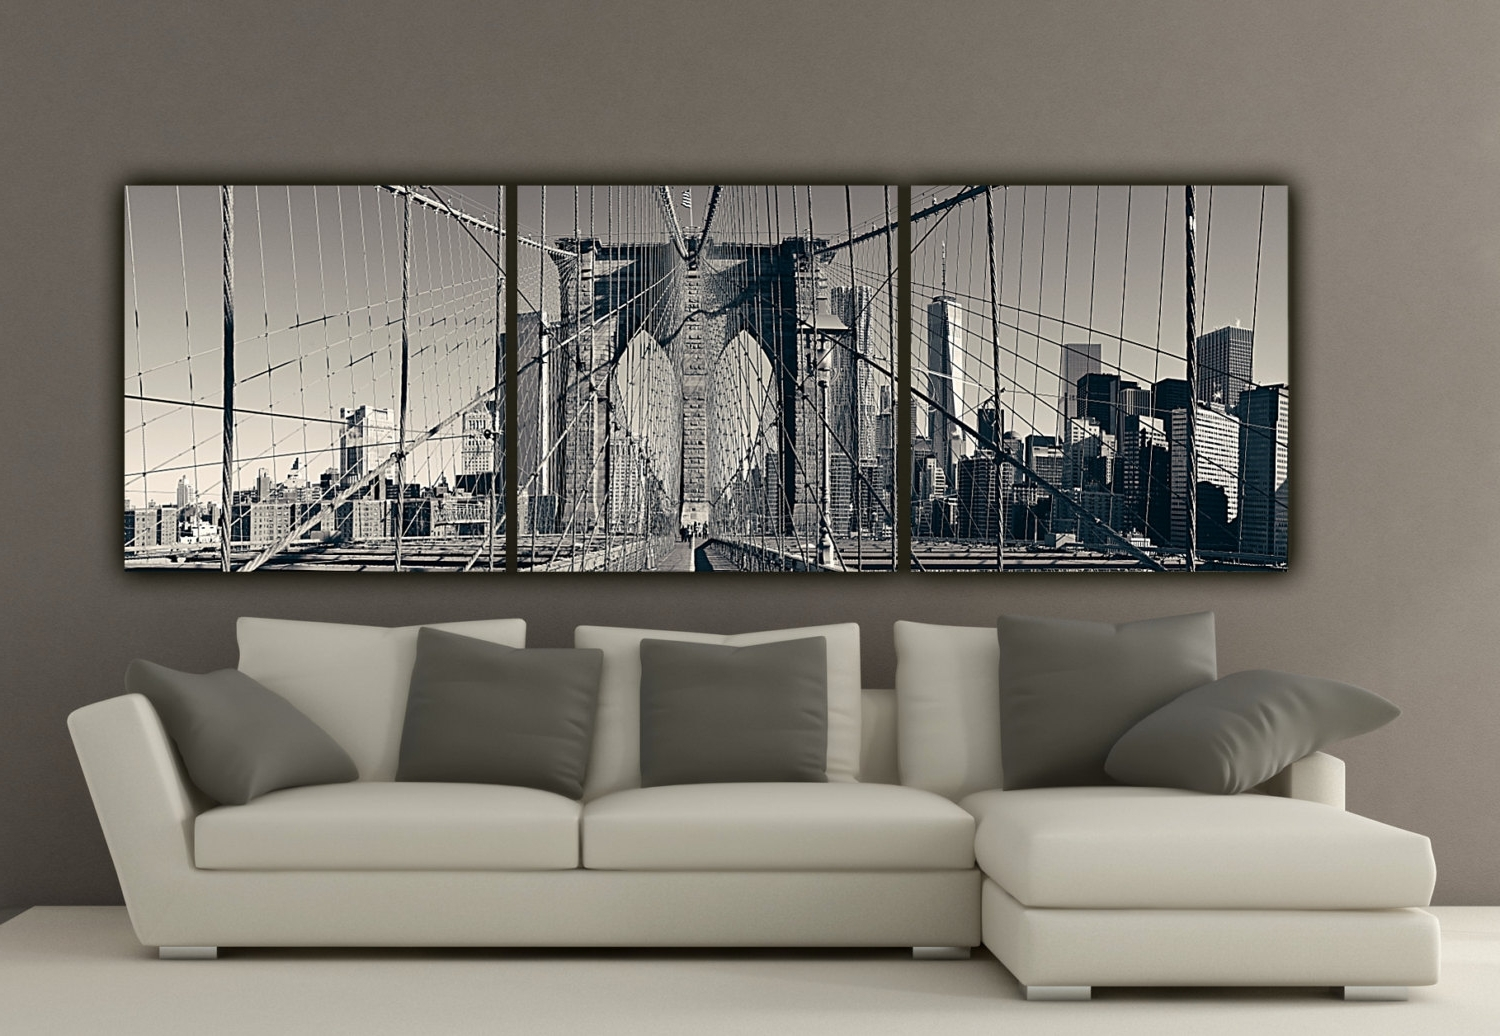 Decor: Surprising Large Canvas Wall Art For Wall Décor Ideas Within 2018 Tile Canvas Wall Art (View 11 of 15)